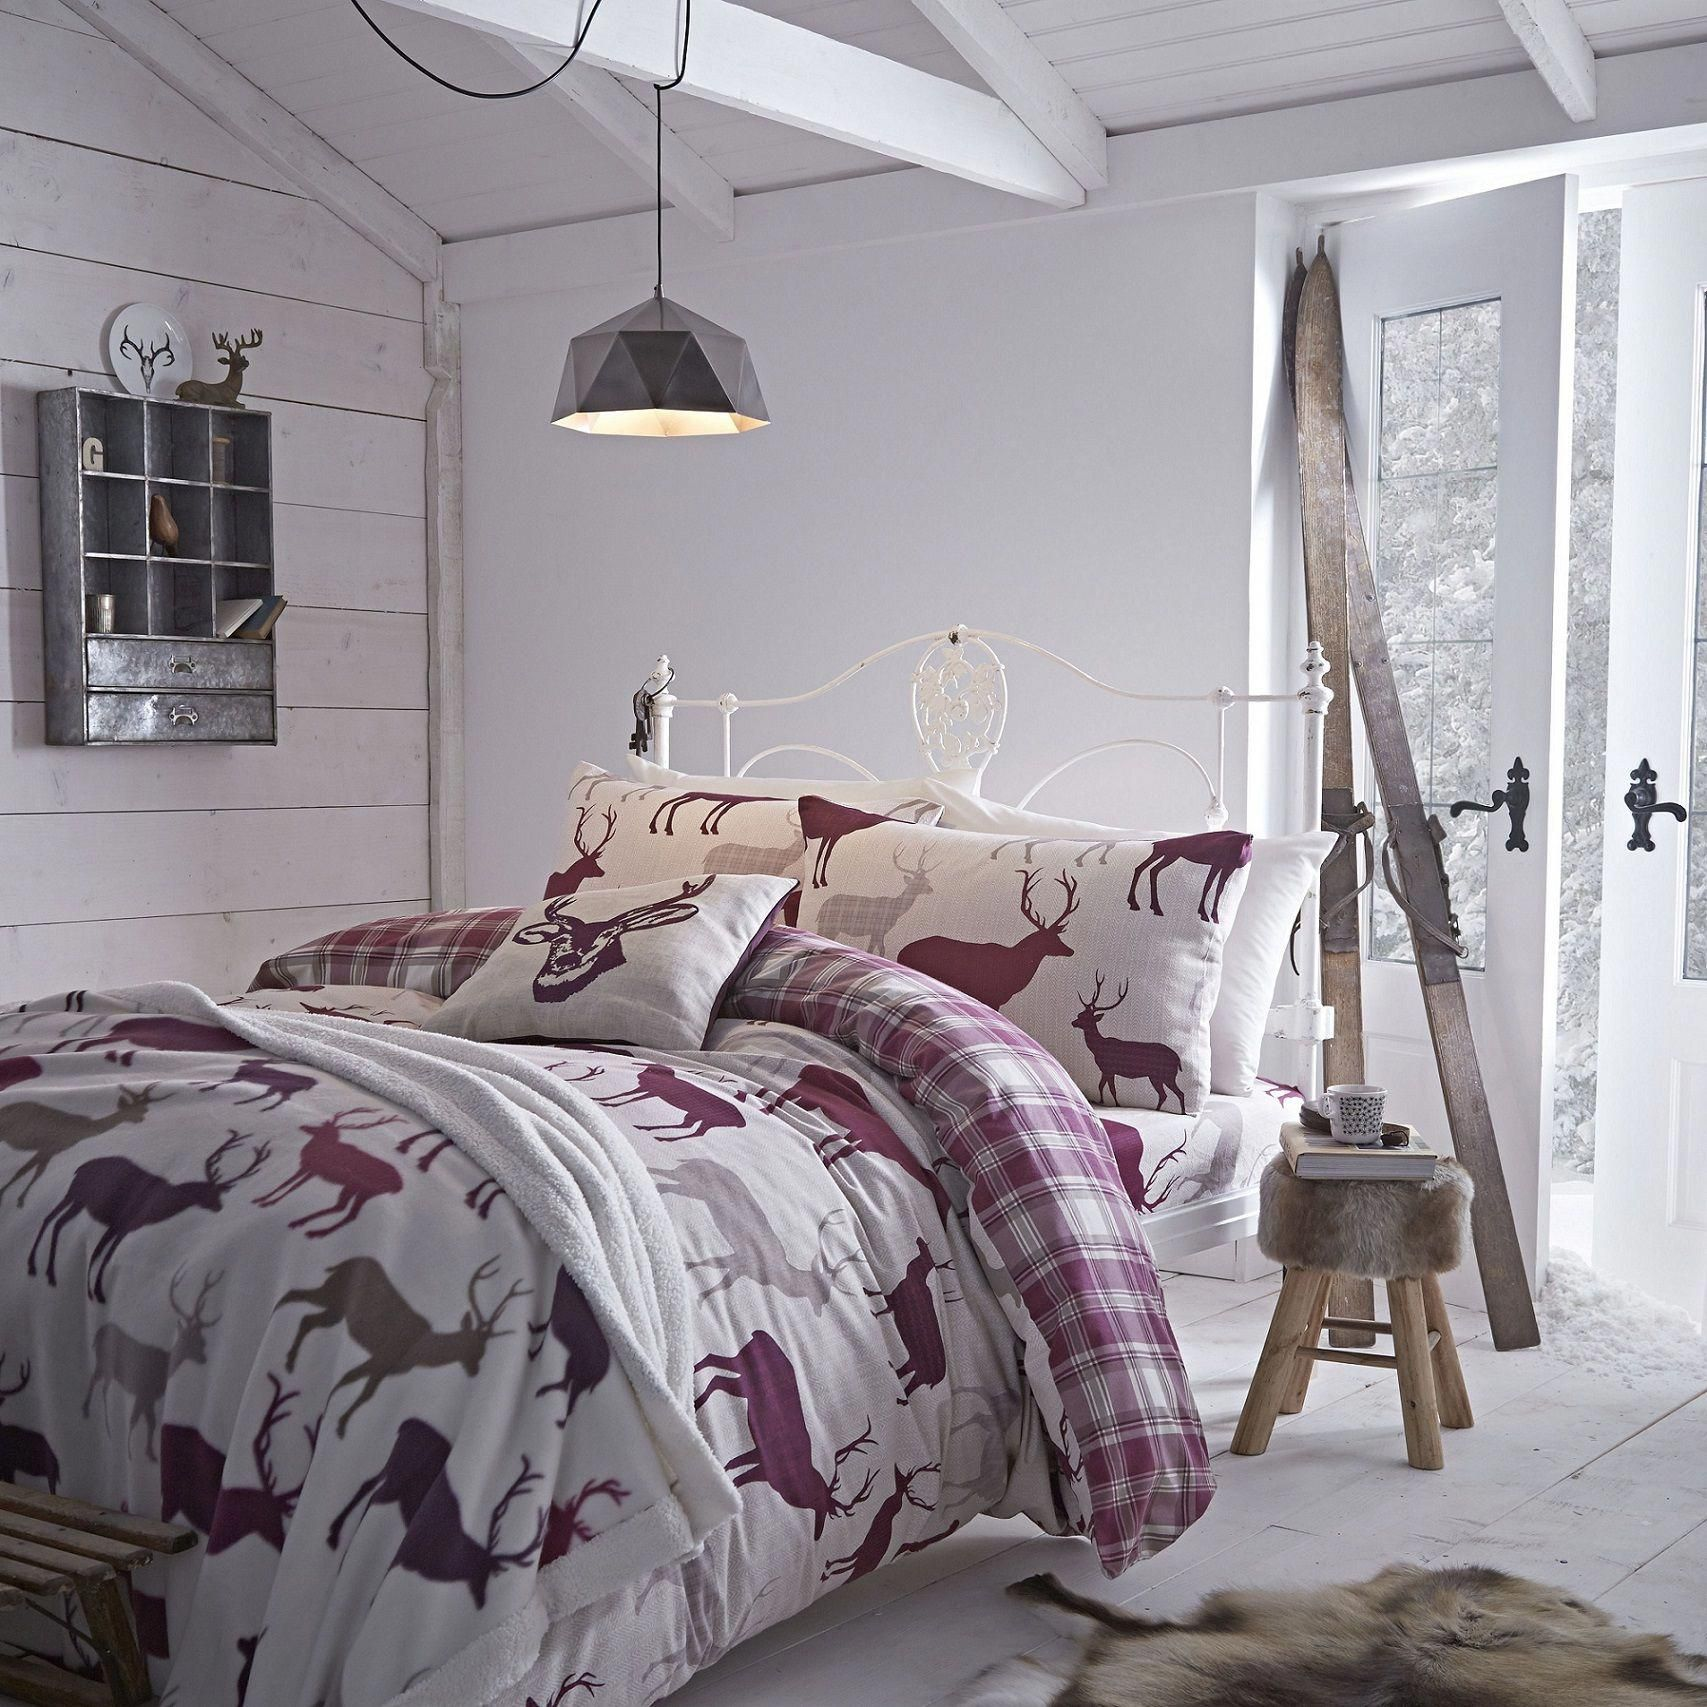 Best Cotton Sheets Types for You